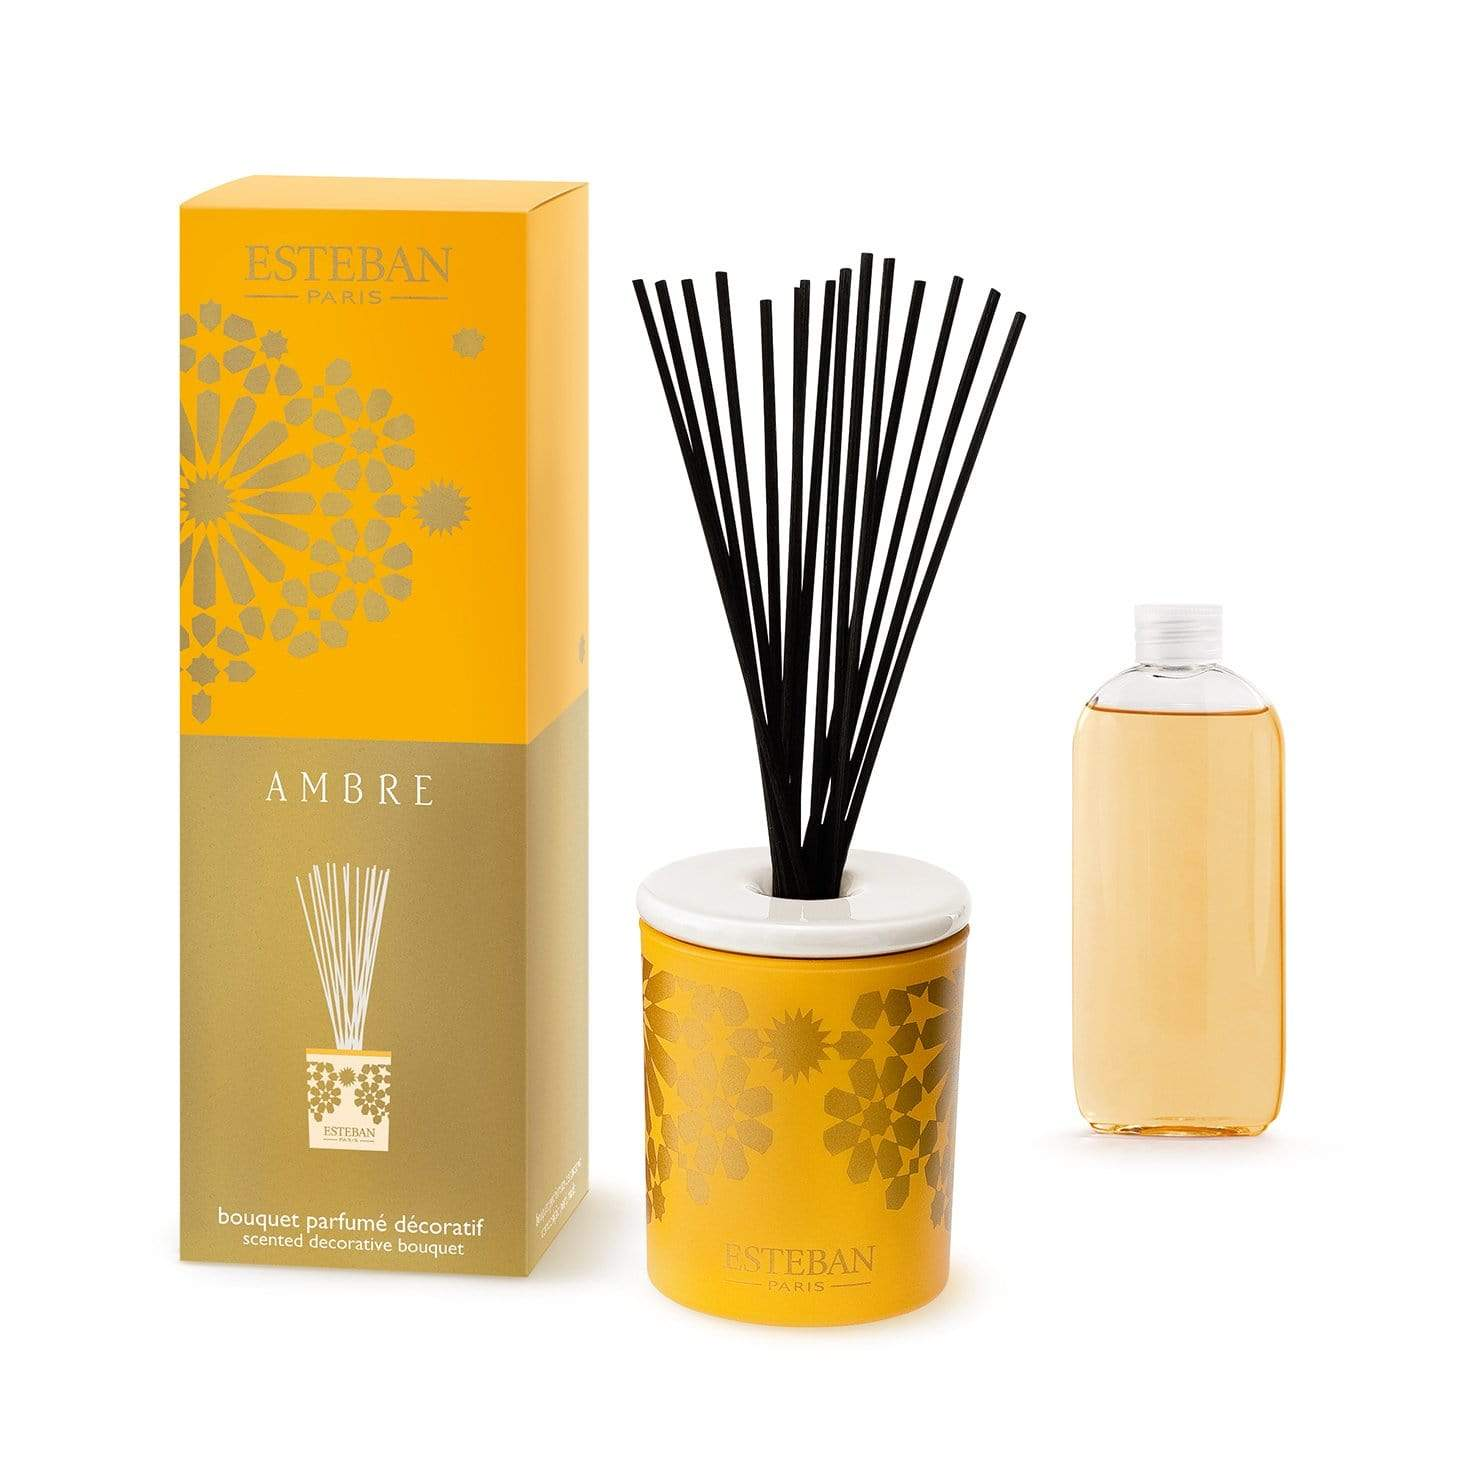 Esteban Ambre Decorative Diffuser